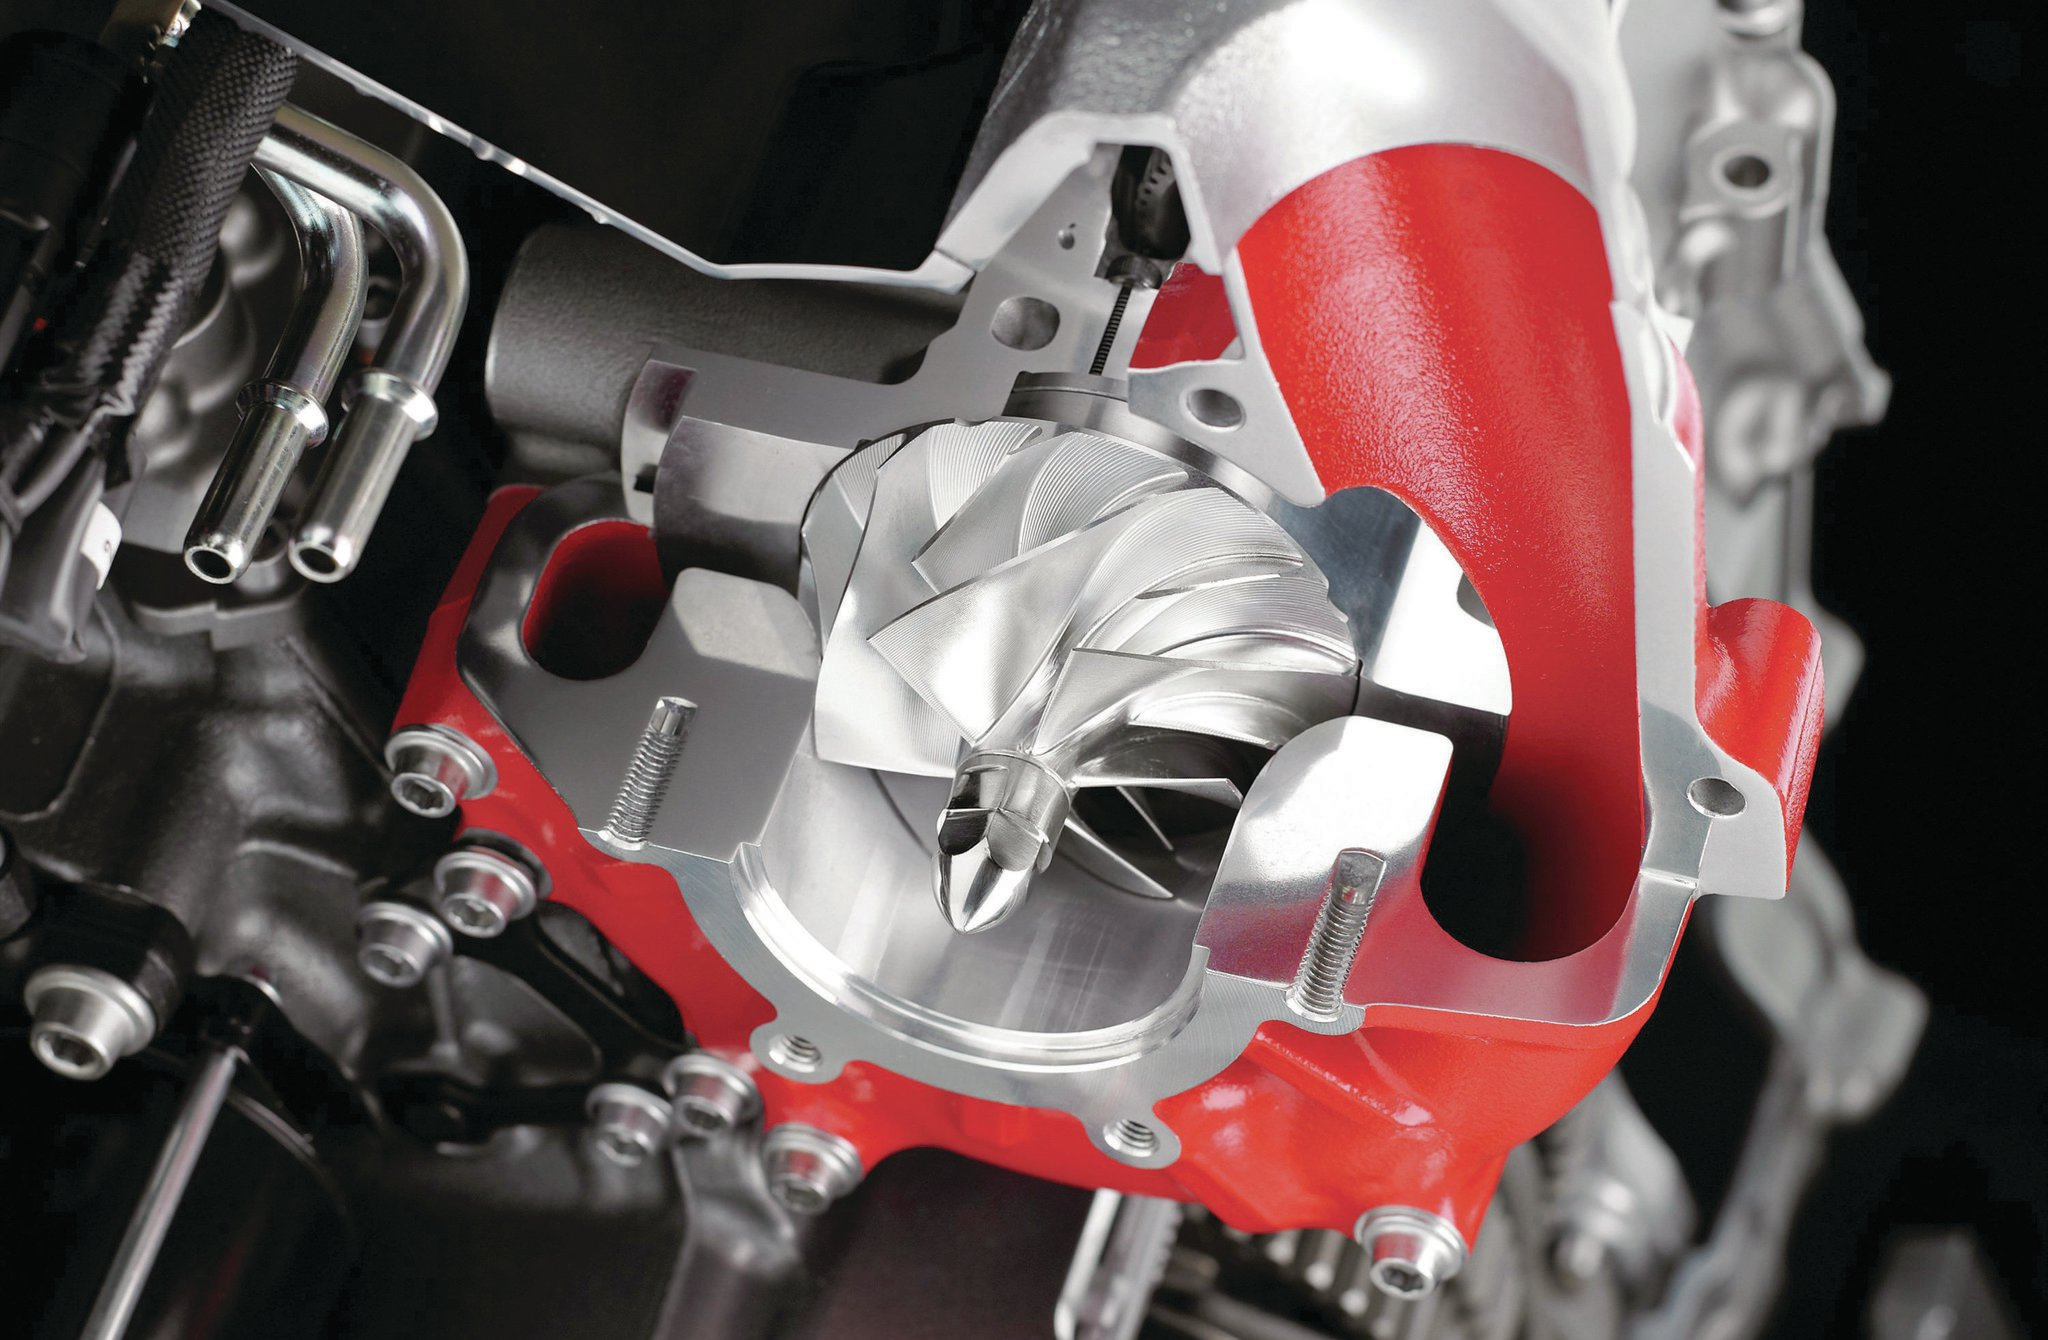 Kawasaki-built, geardriven centrifugal supercharger with a CNC-machined aluminum compressor wheel that spins up to 130,000 rpm, makes 20 psi of boost, and compresses 7 cubic feet of air per second into the engine without the need of an intercooler.